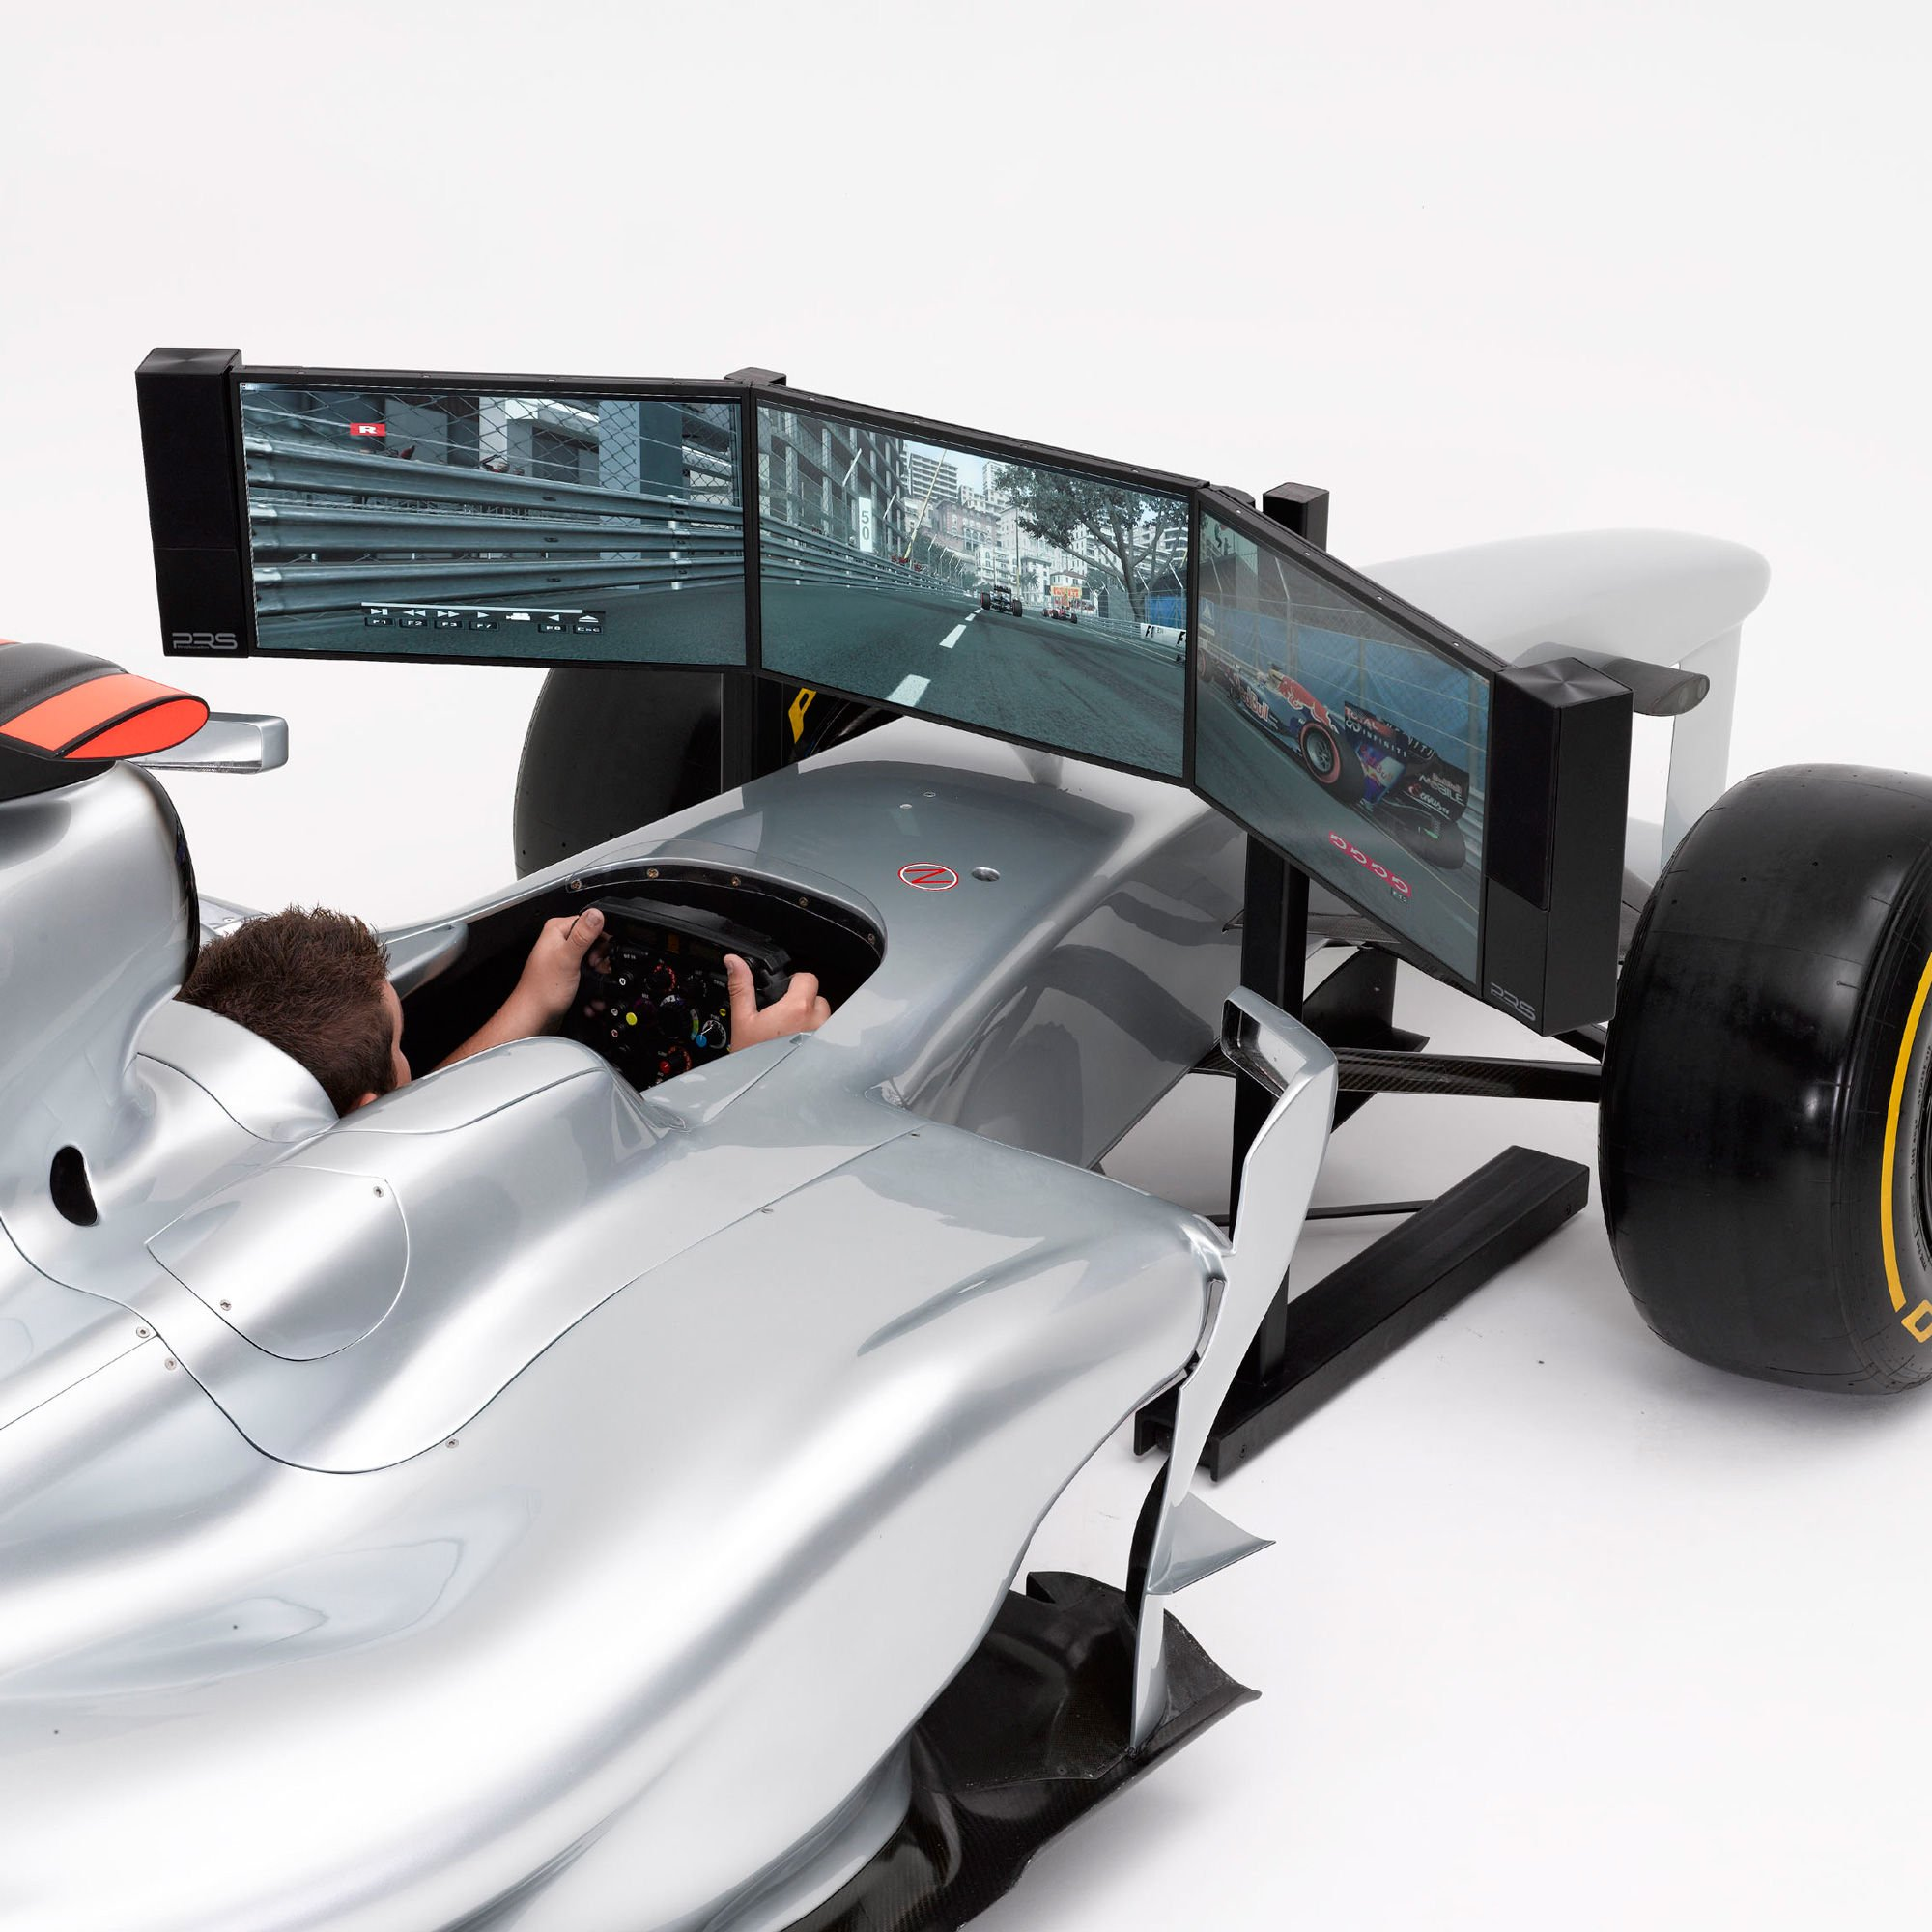 Full Size Formula 1 Racing Simulator for Video Games